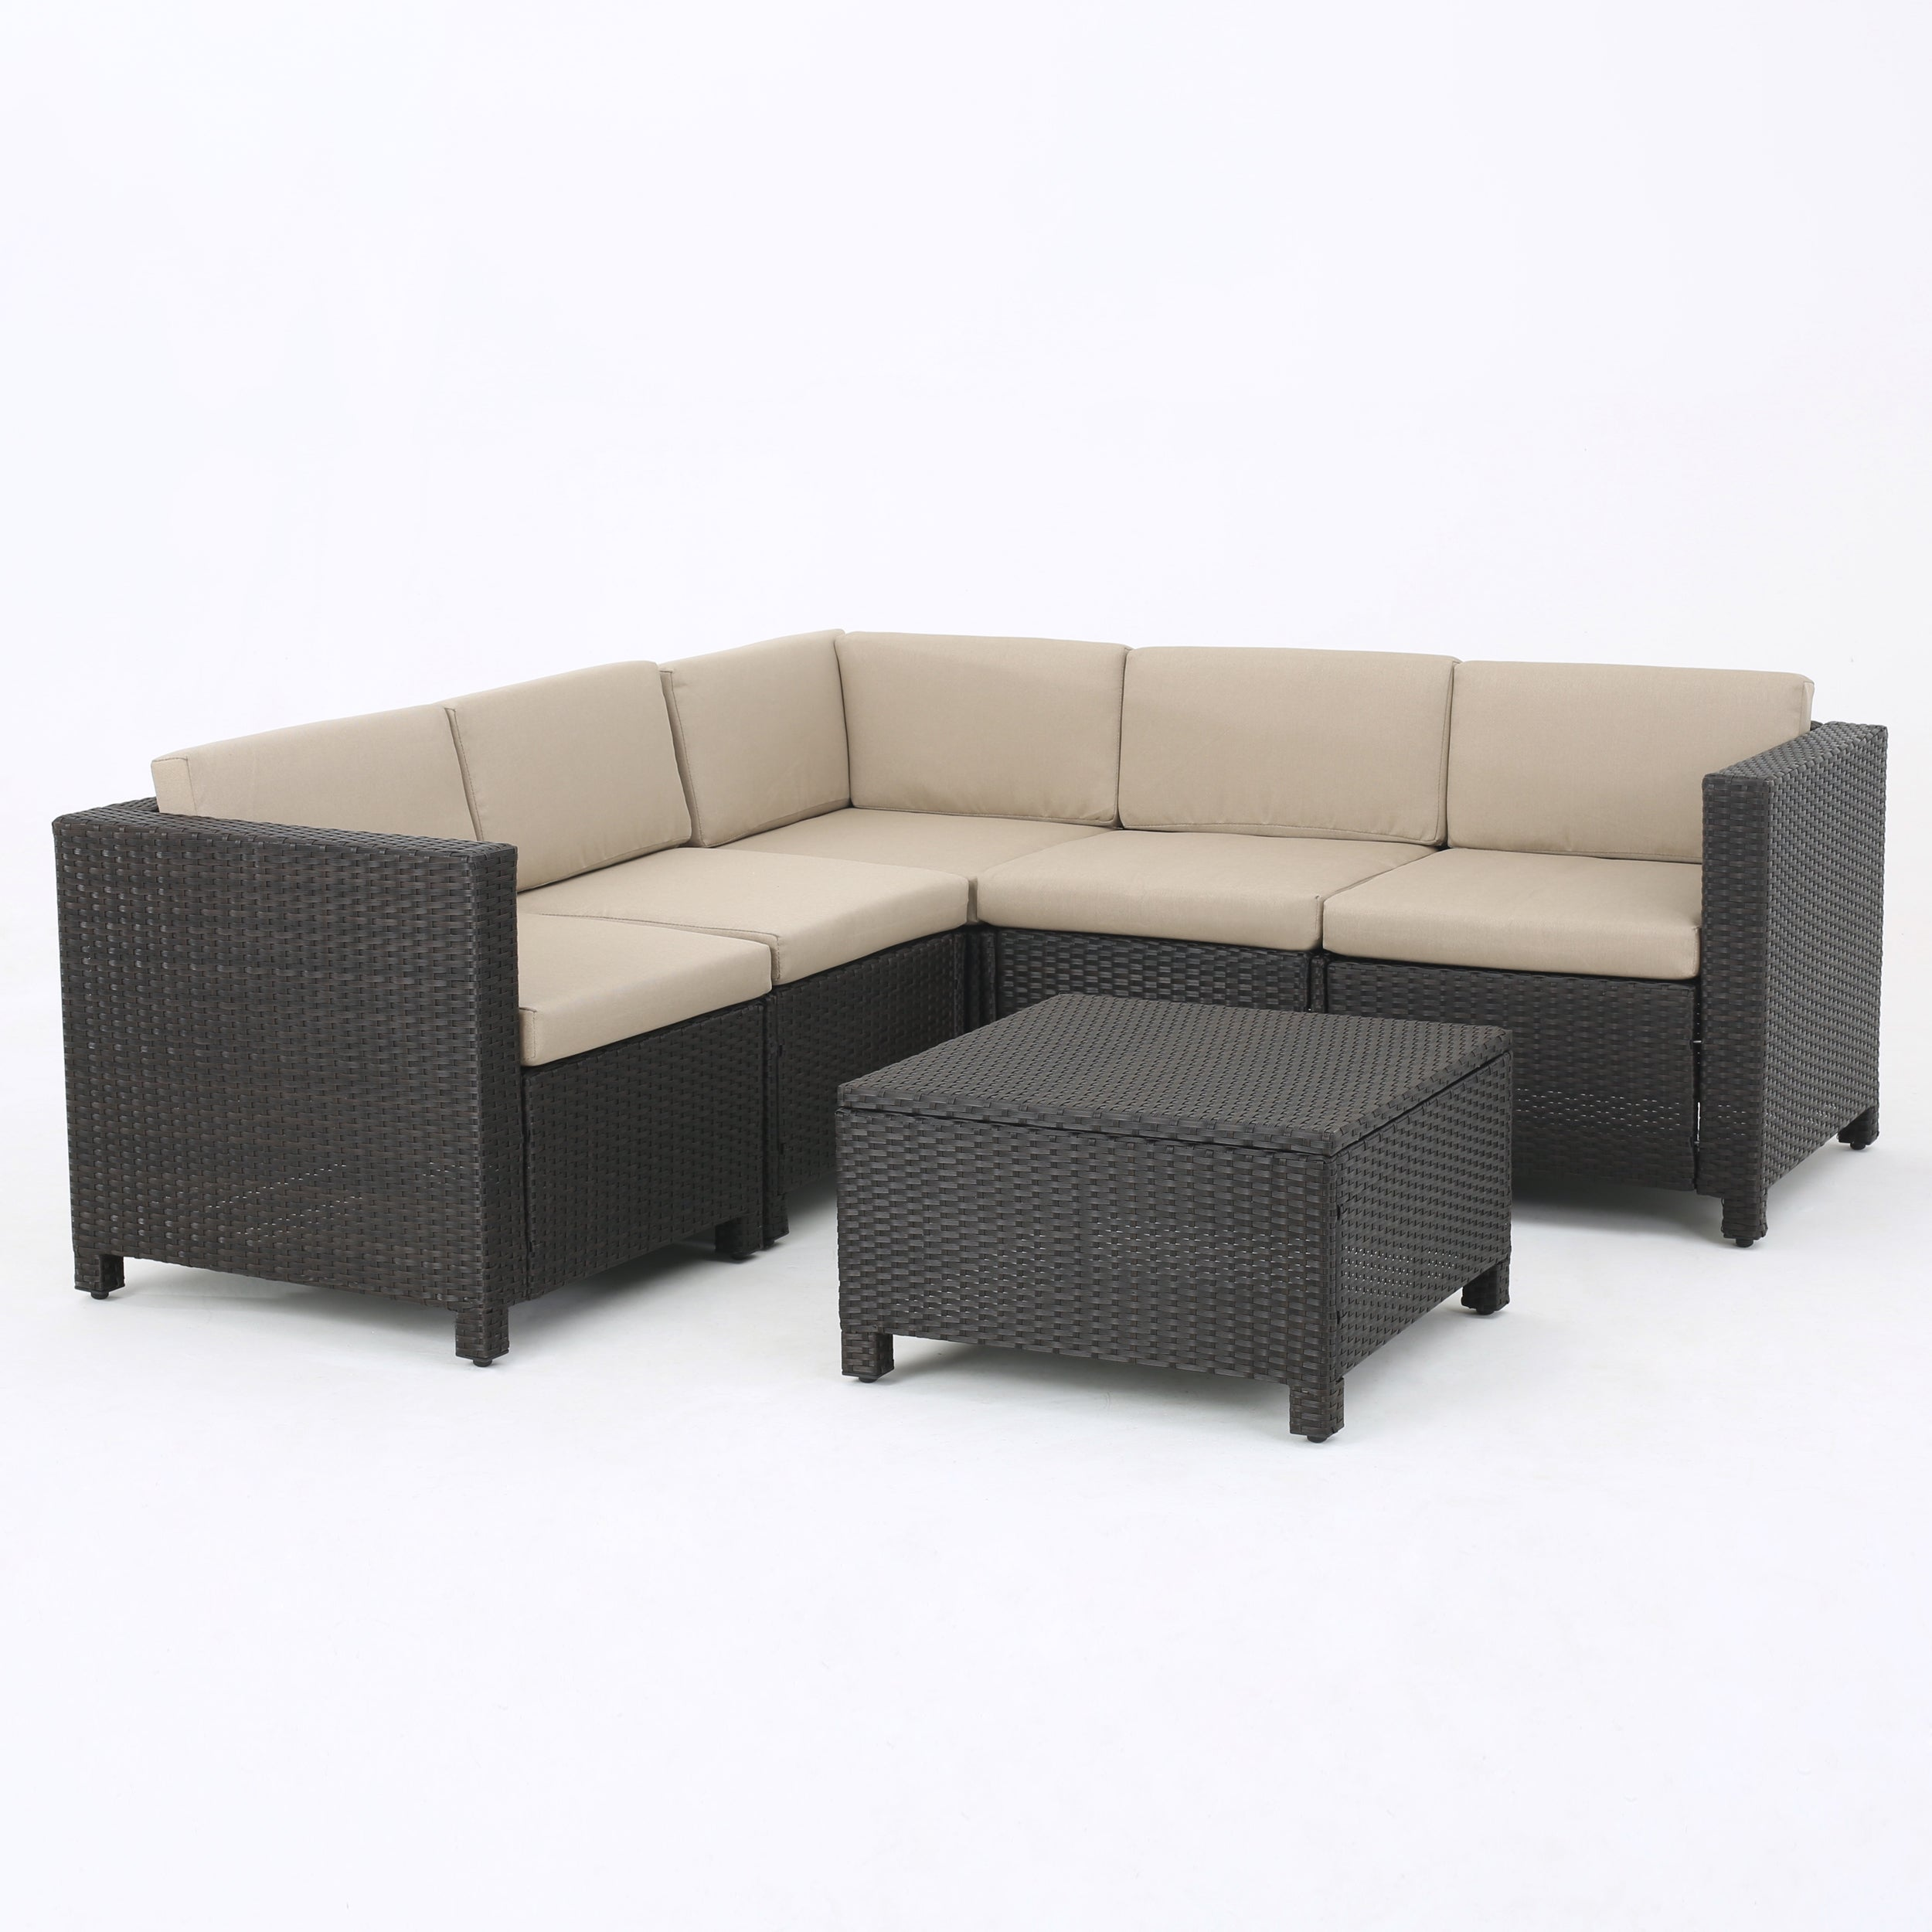 Puerta Outdoor 6-piece Wicker V-Shaped Sectional Sofa Set by ...